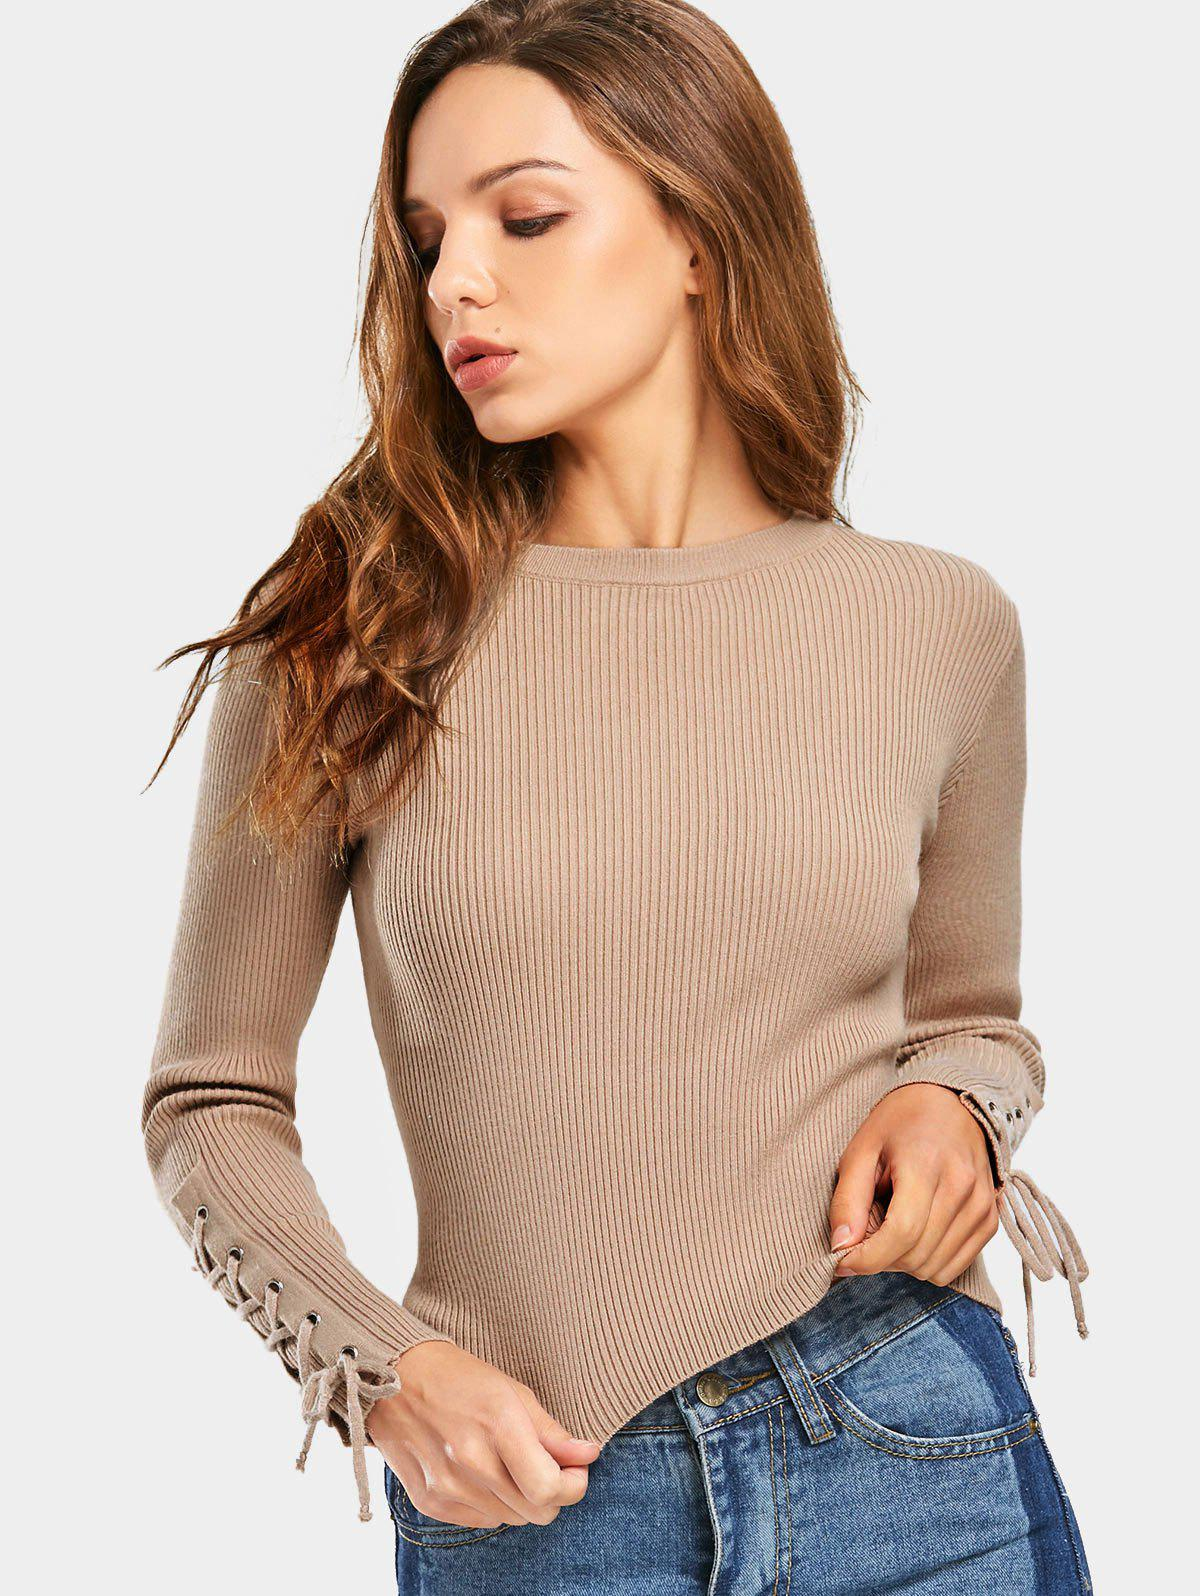 Lace Up Sleeve Ribbed Sweater 224569801